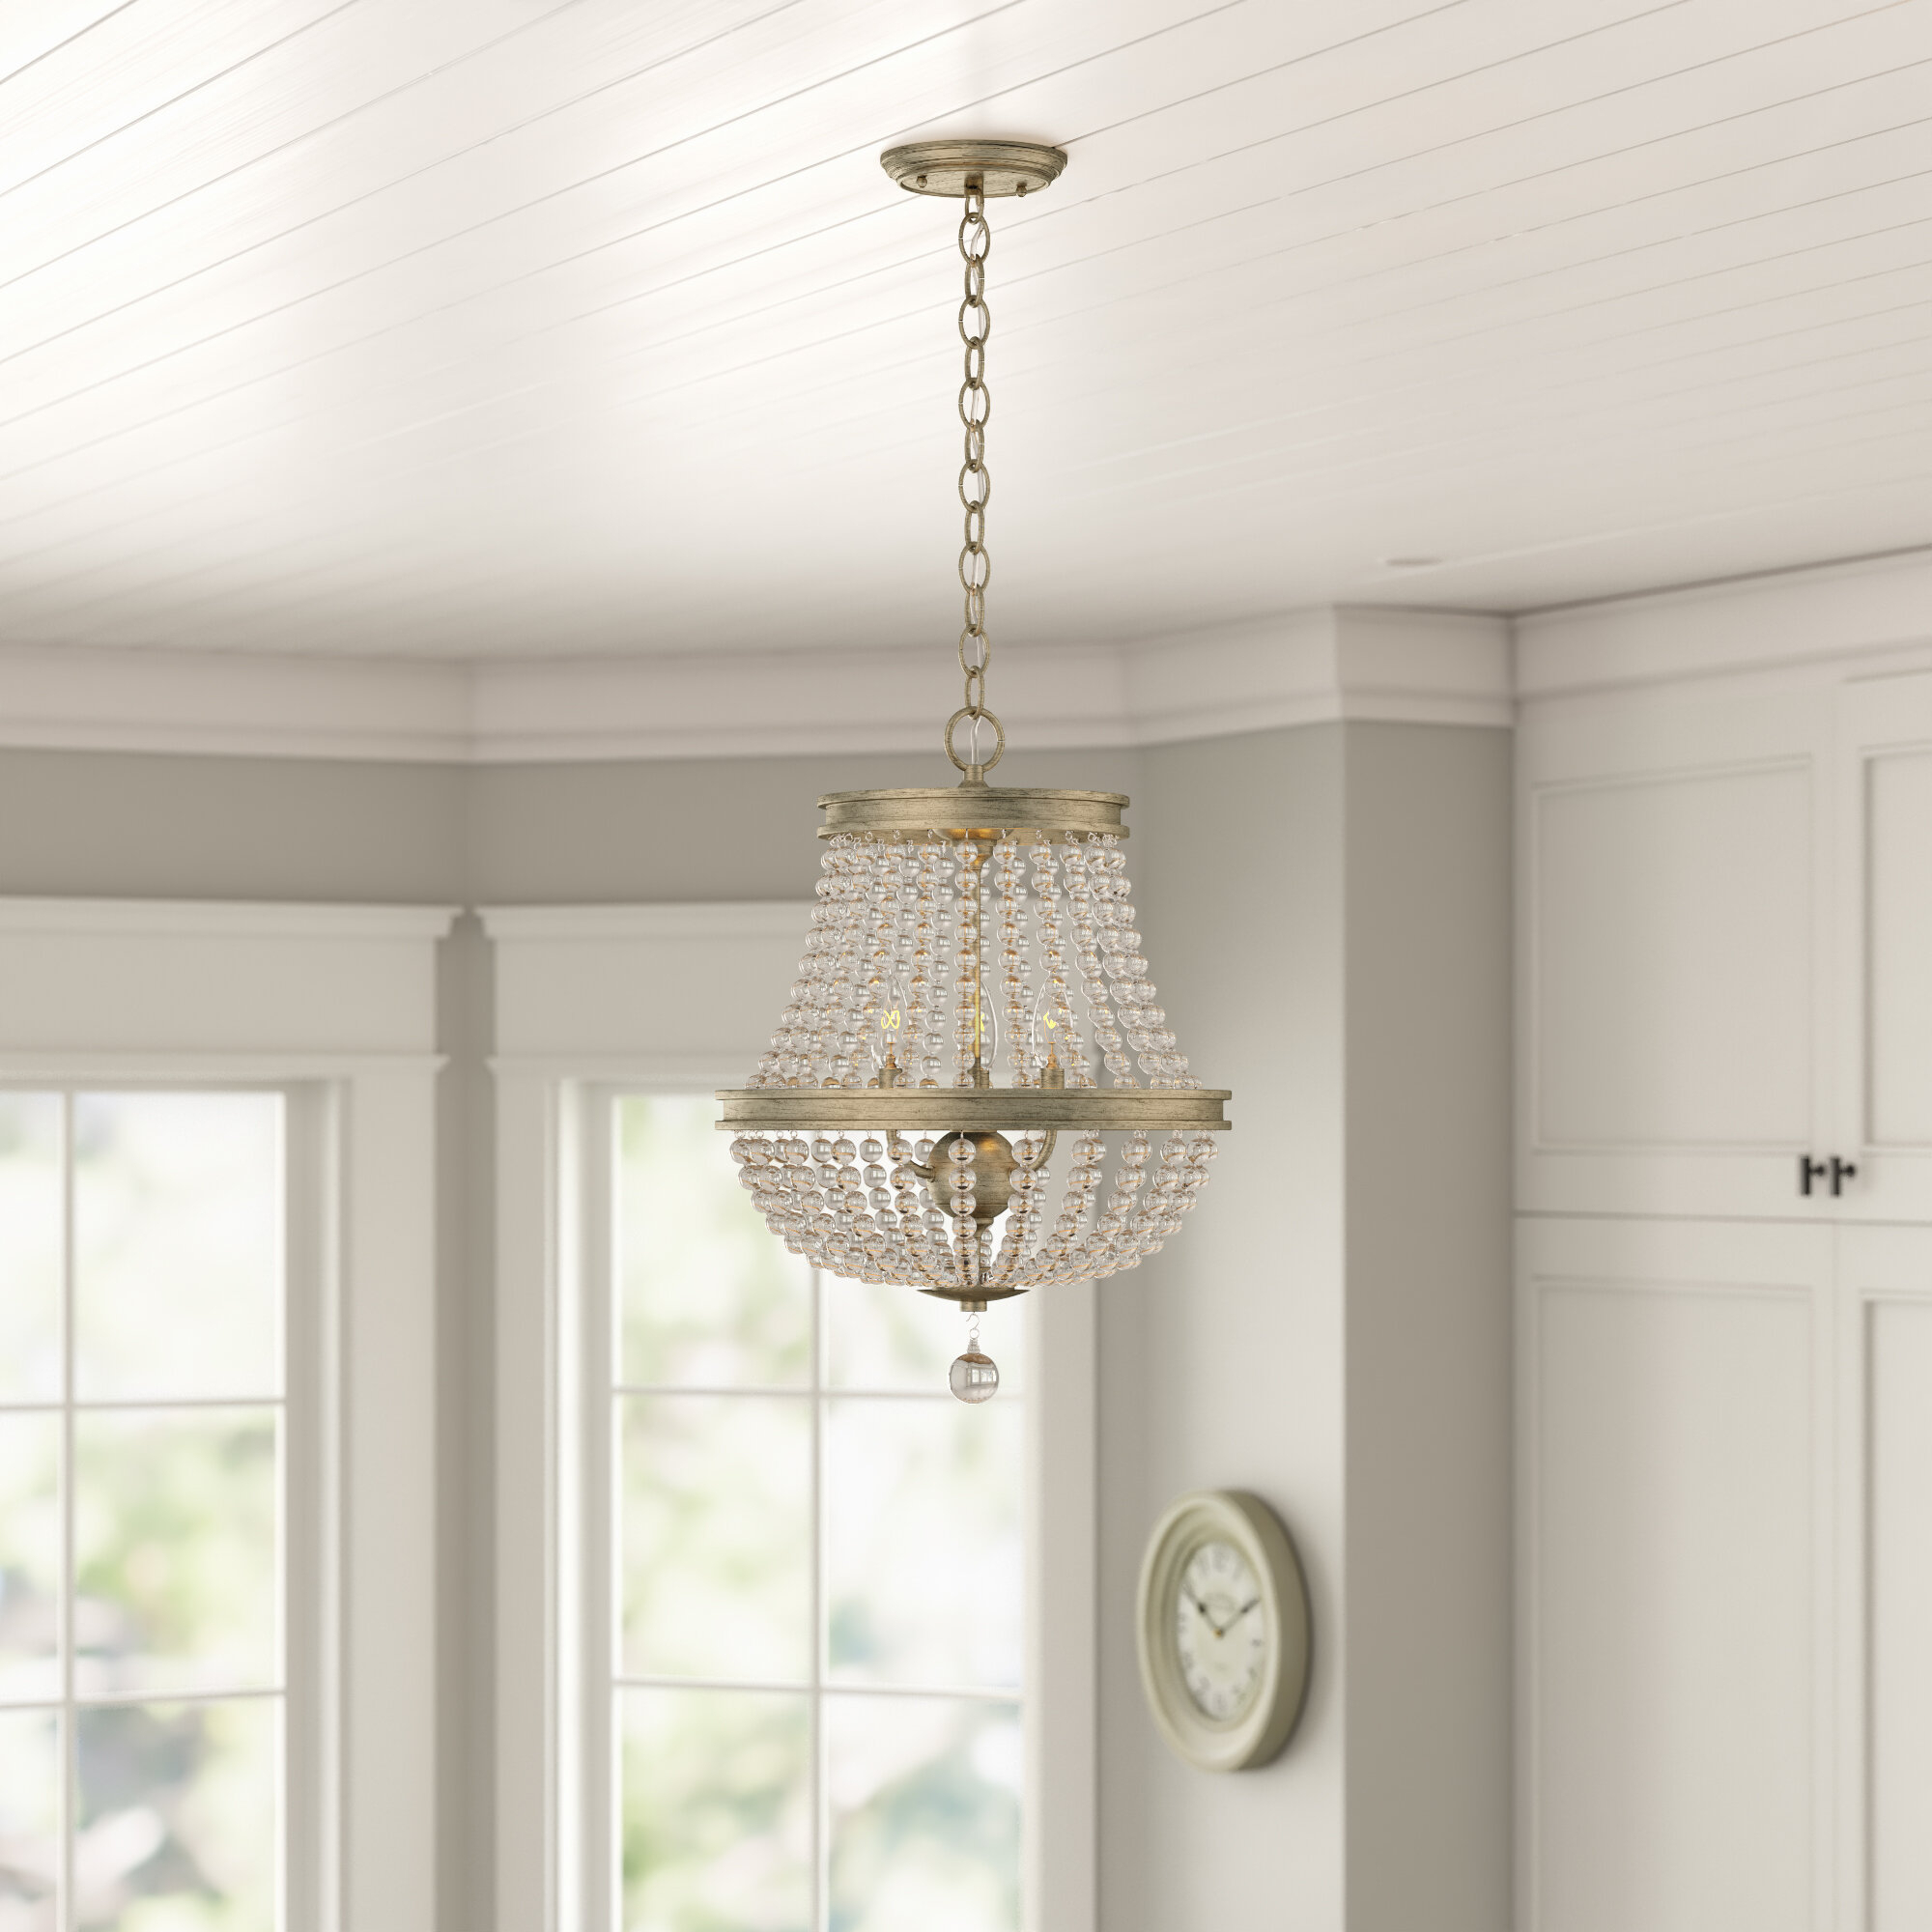 Farmhouse & Rustic Kids Chandeliers | Birch Lane With Bouchette Traditional 6 Light Candle Style Chandeliers (View 20 of 30)